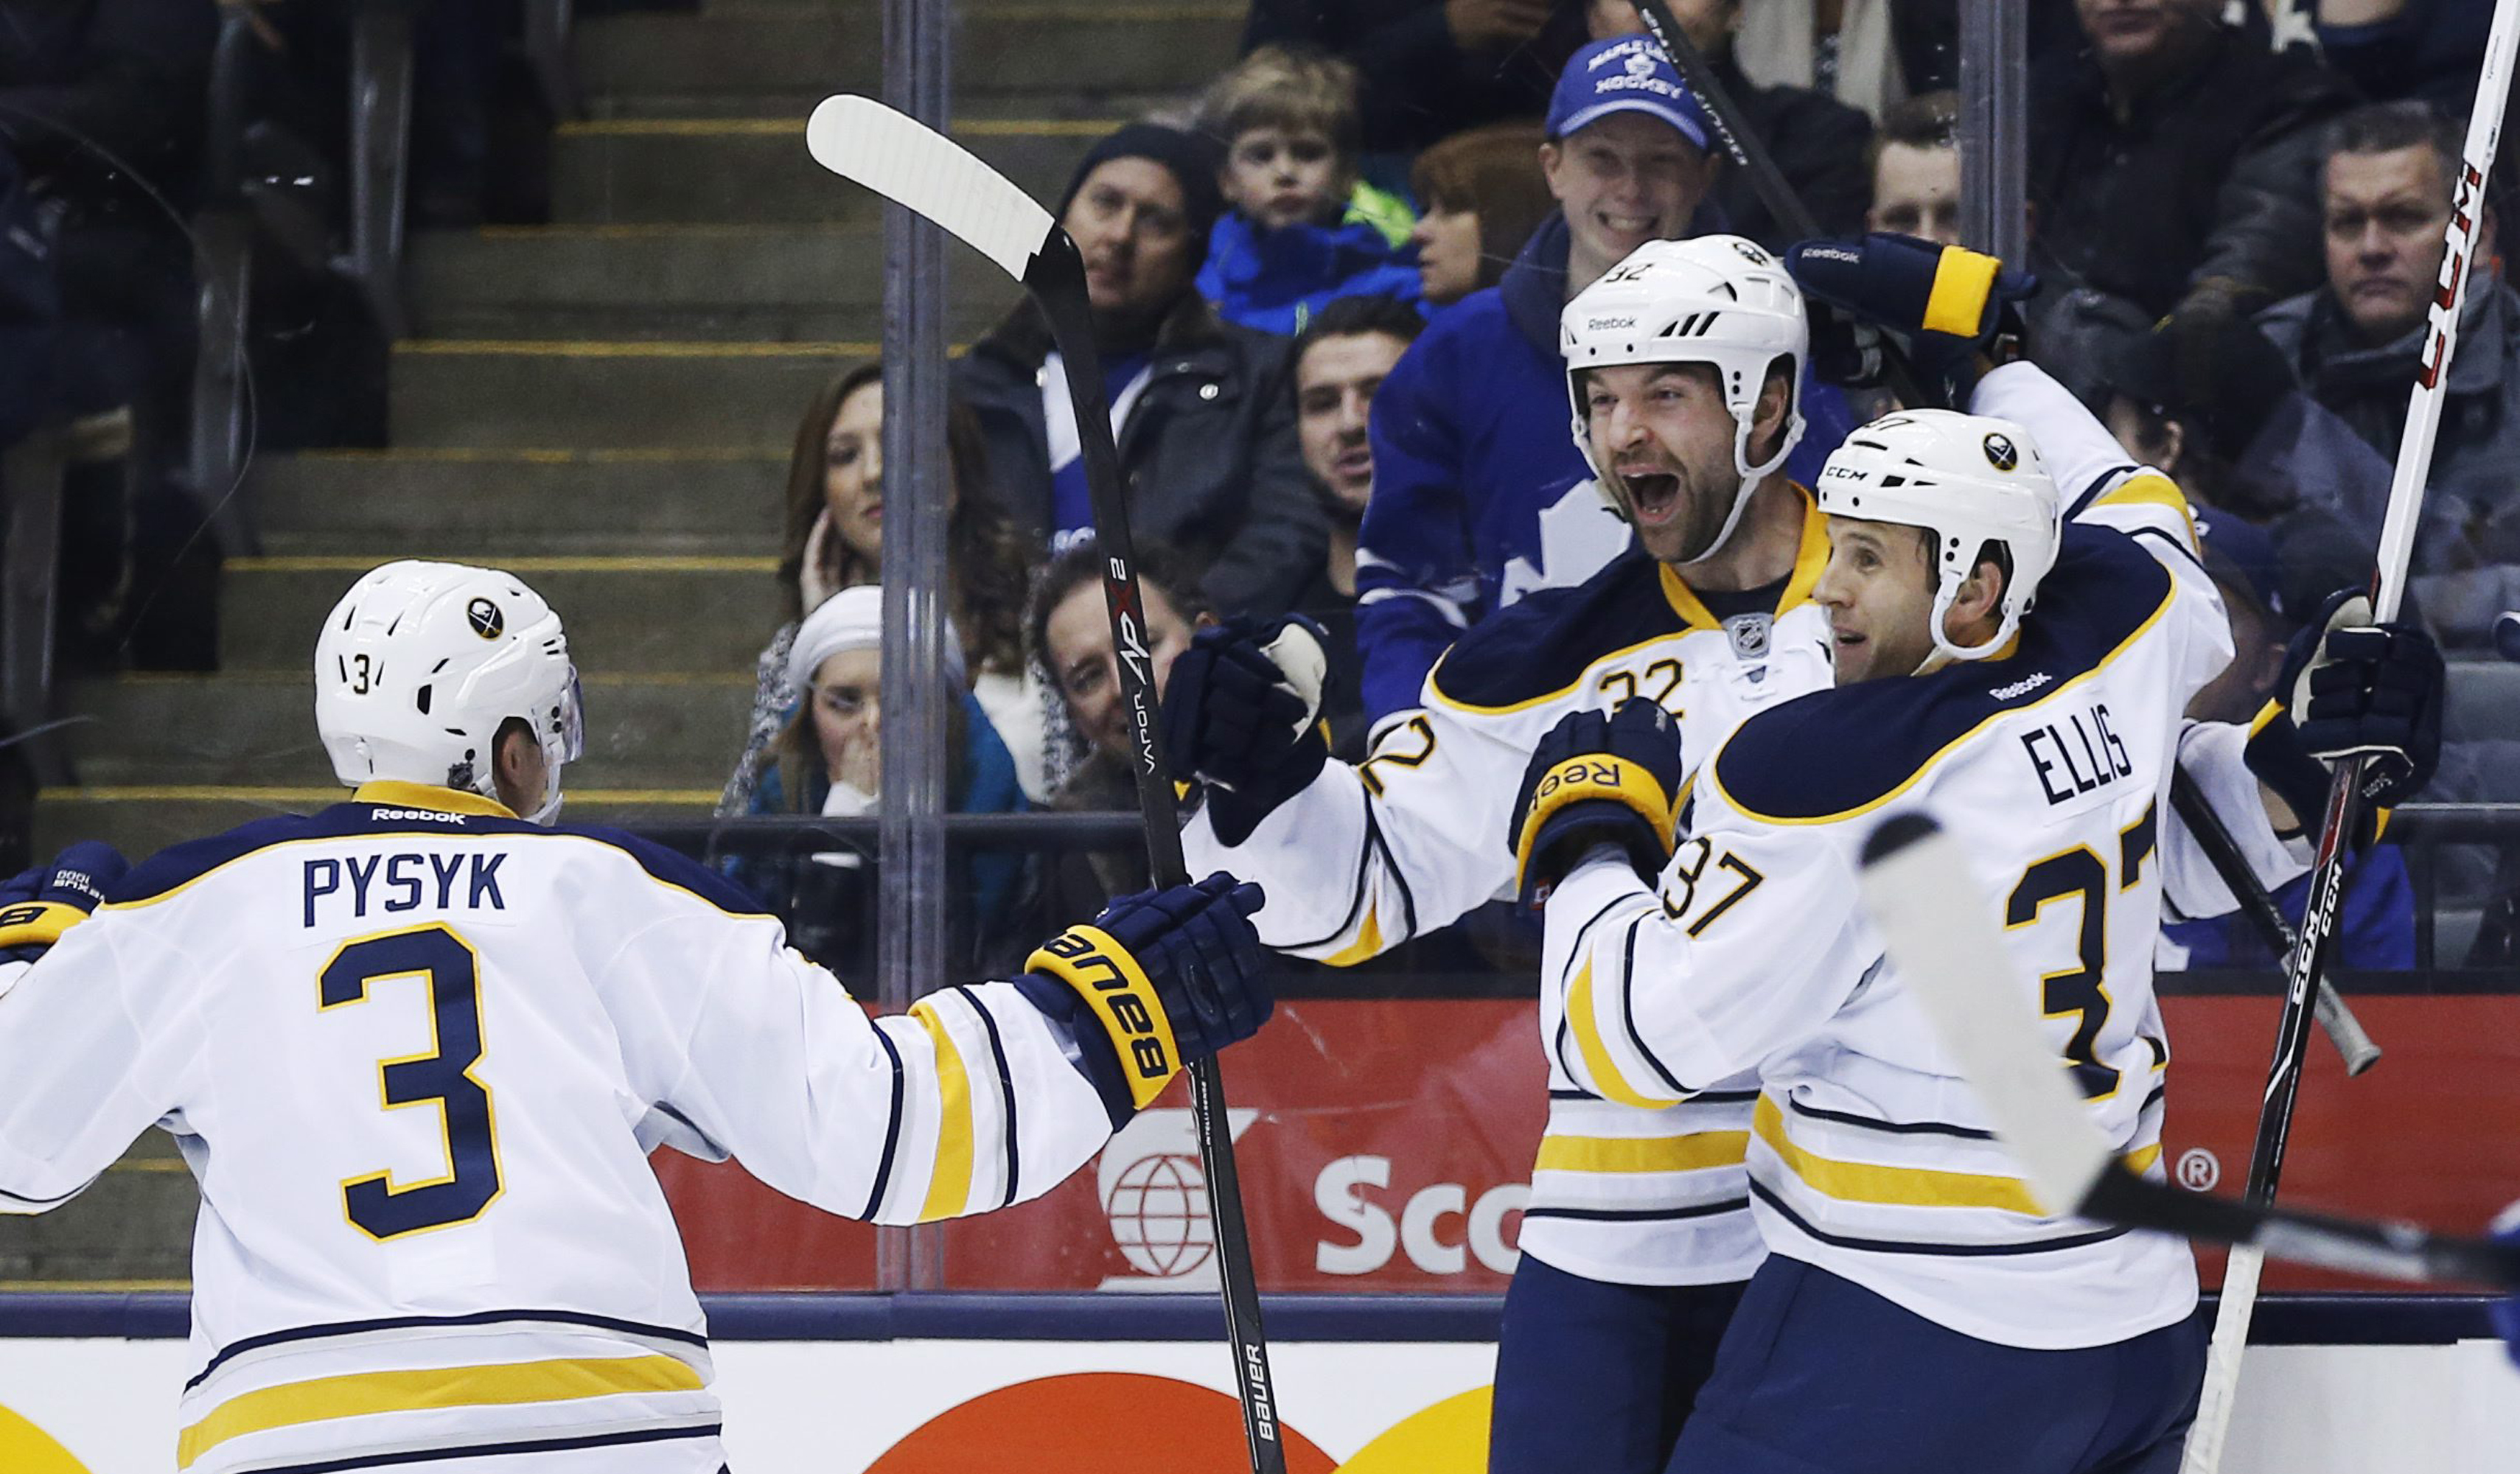 Buffalo Sabres' John Scott, center, celebrates his goal with teammates Mark Pysyk, left, and Matt Ellis against the Toronto Maple Leafs during the first period of an NHL hockey game Friday, Dec. 27, 2013, in Toronto. Scott took a shot at the NHL in a firs